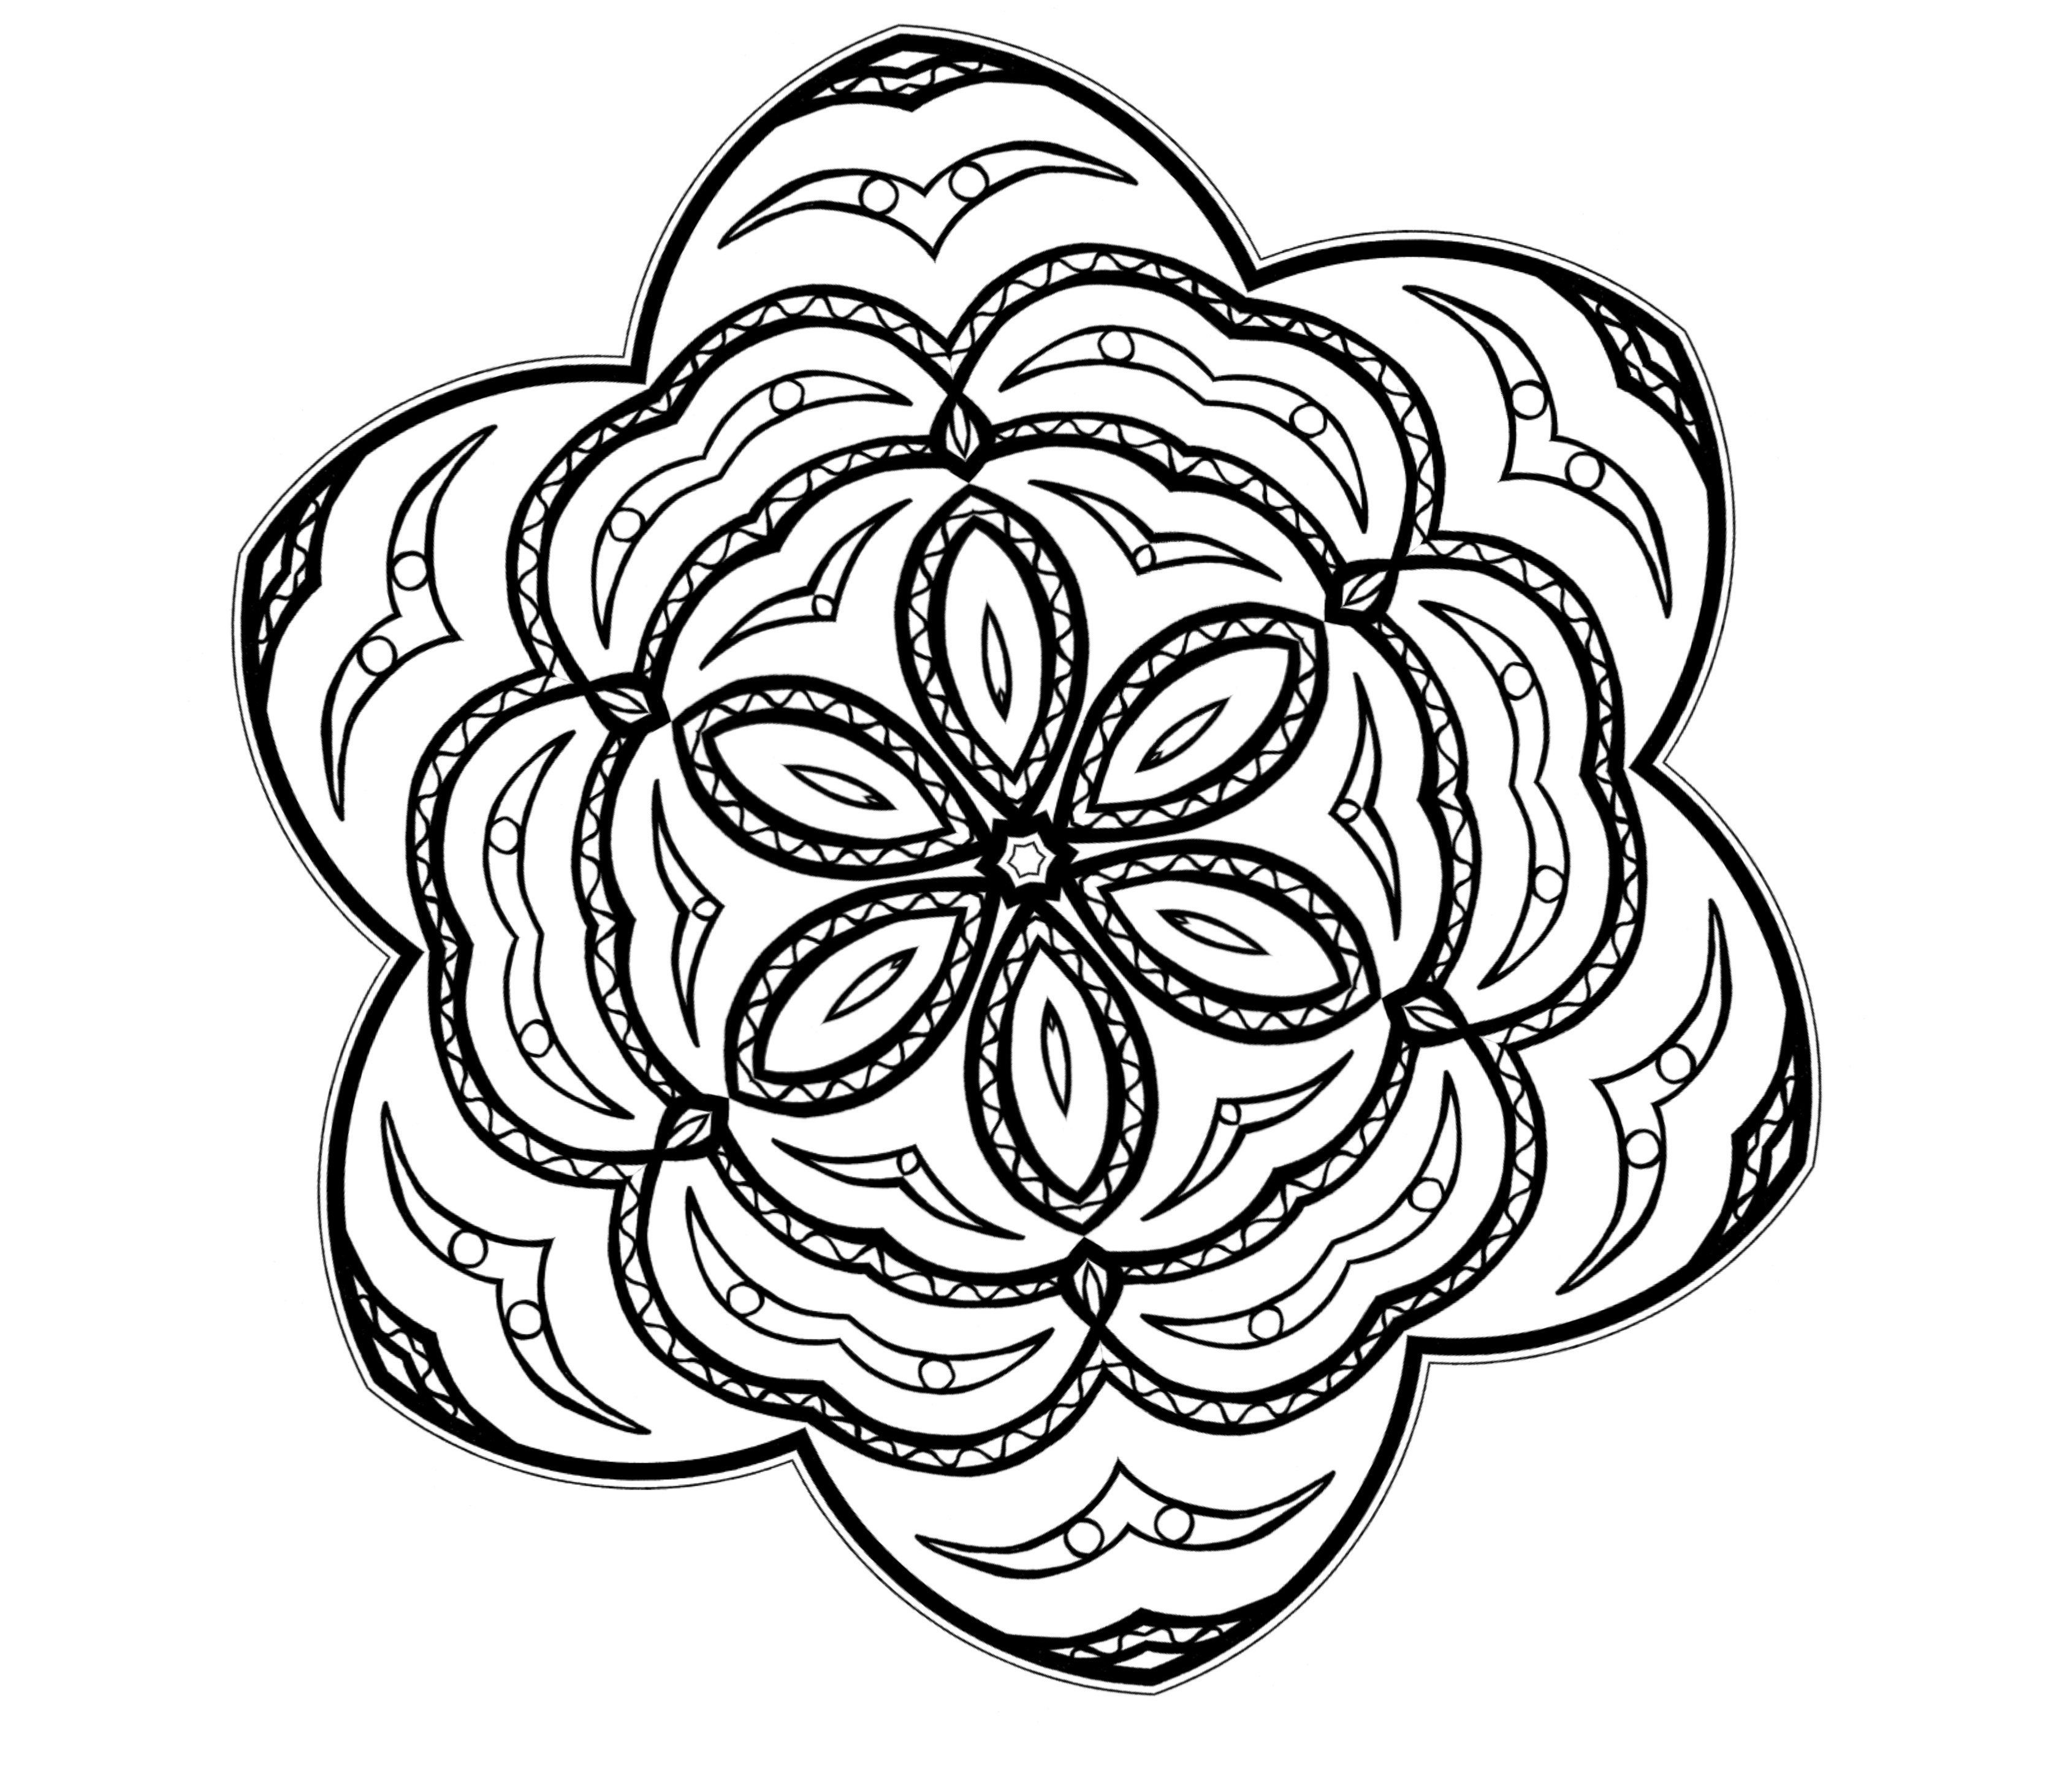 coloring pages for teens printable easy coloring pages for teens at getcoloringscom free for teens printable pages coloring